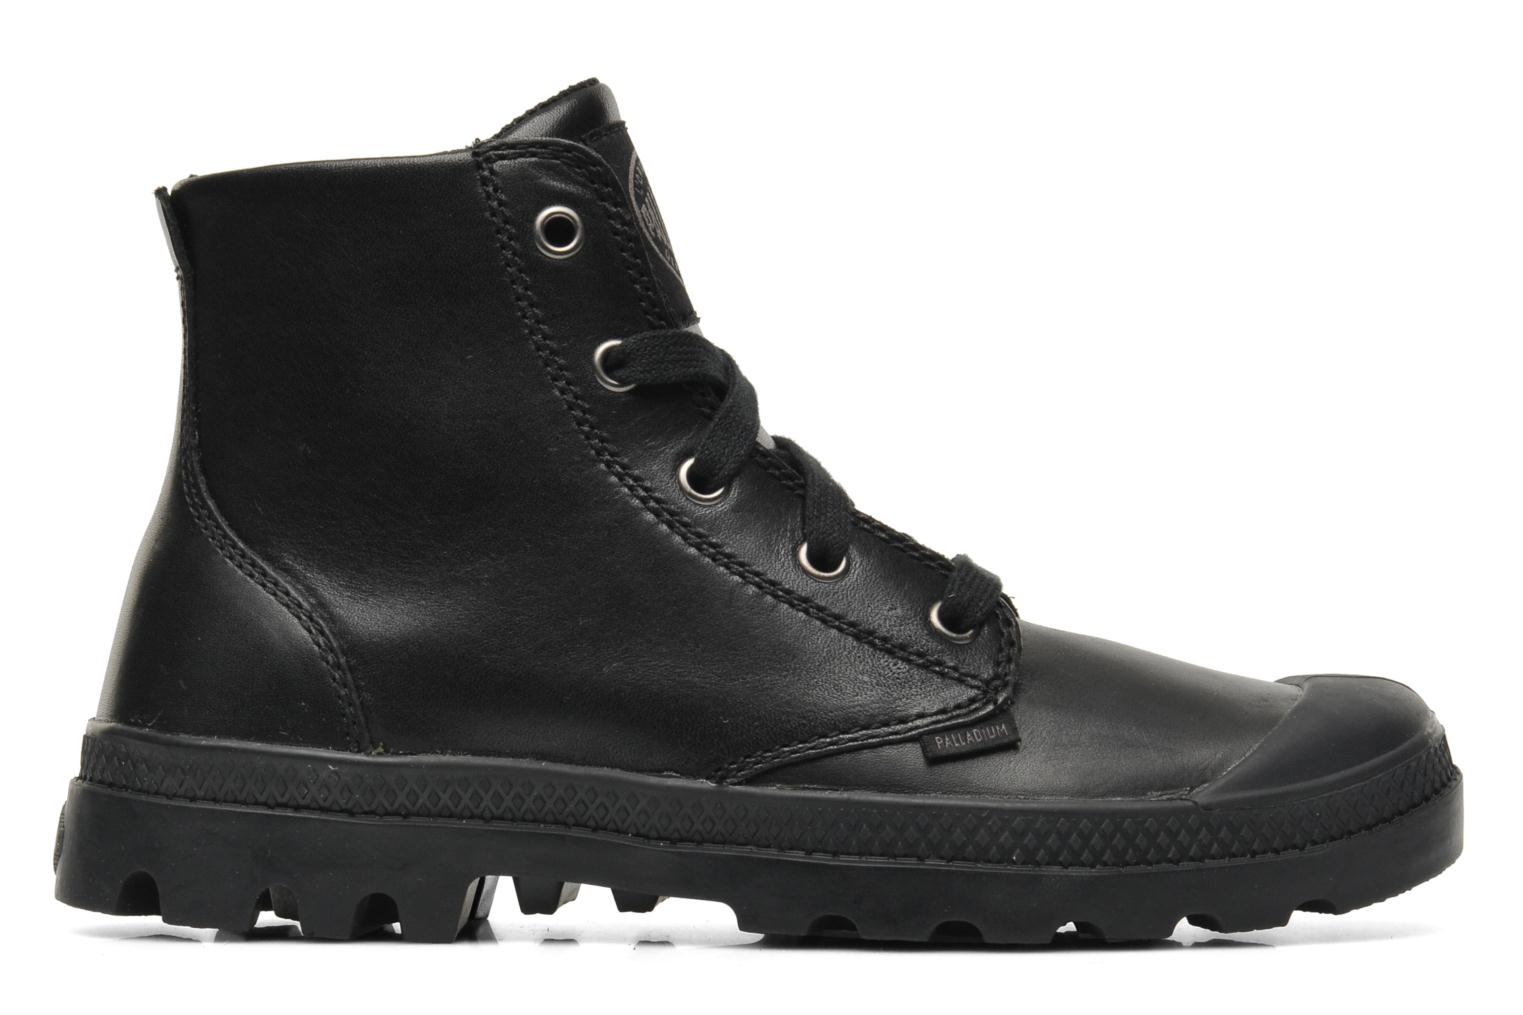 Baskets Palladium Pampa hi leather w Noir vue derrière